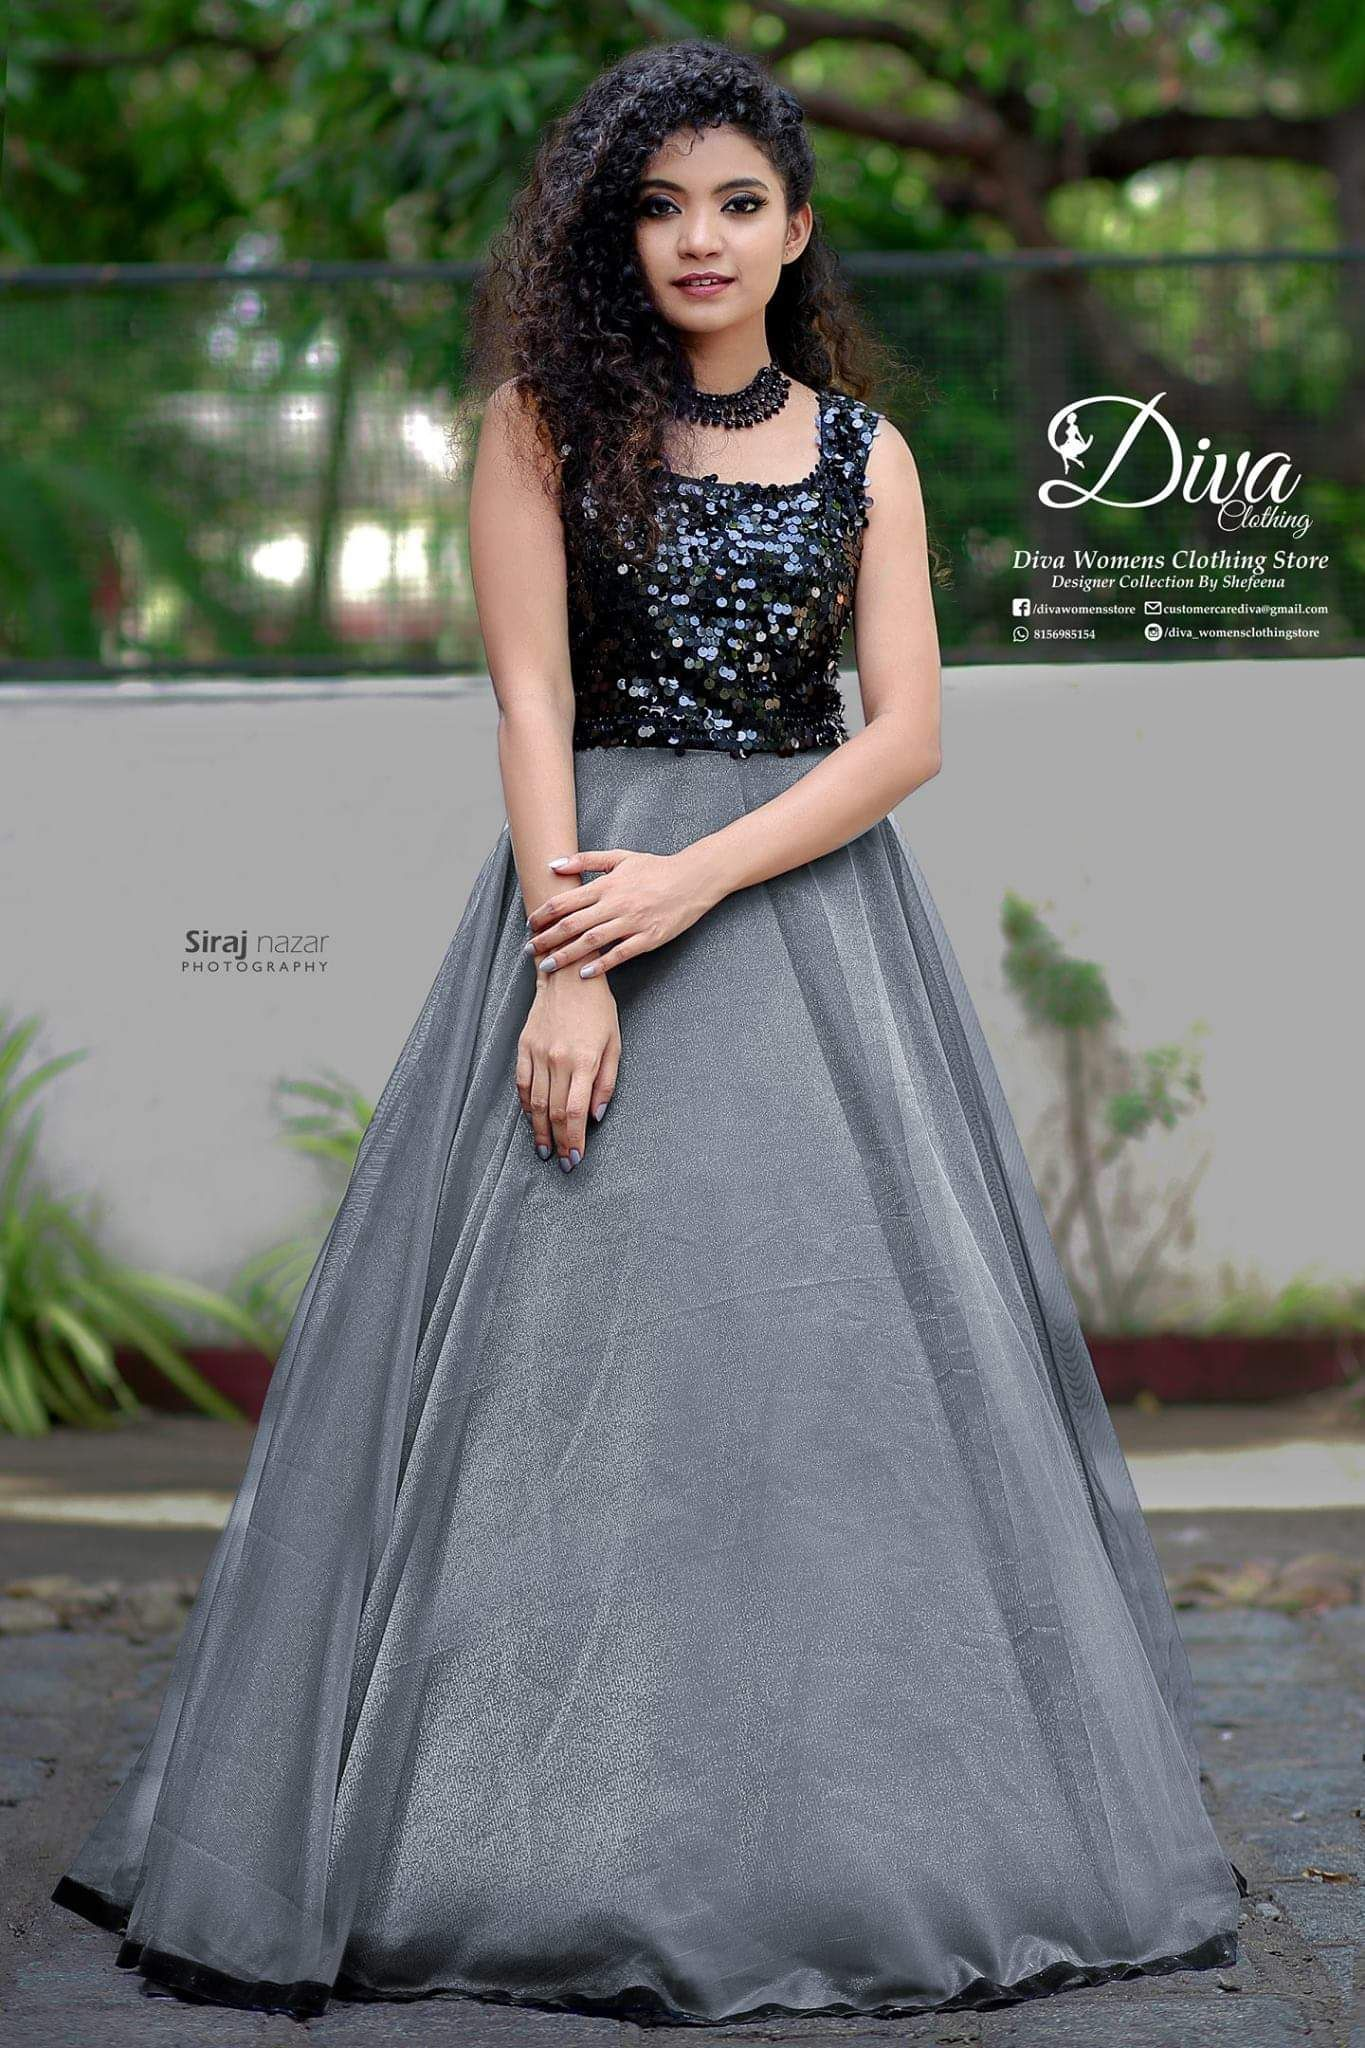 Pin by TeeJay Selection on Gowns & party wears | Gown ...